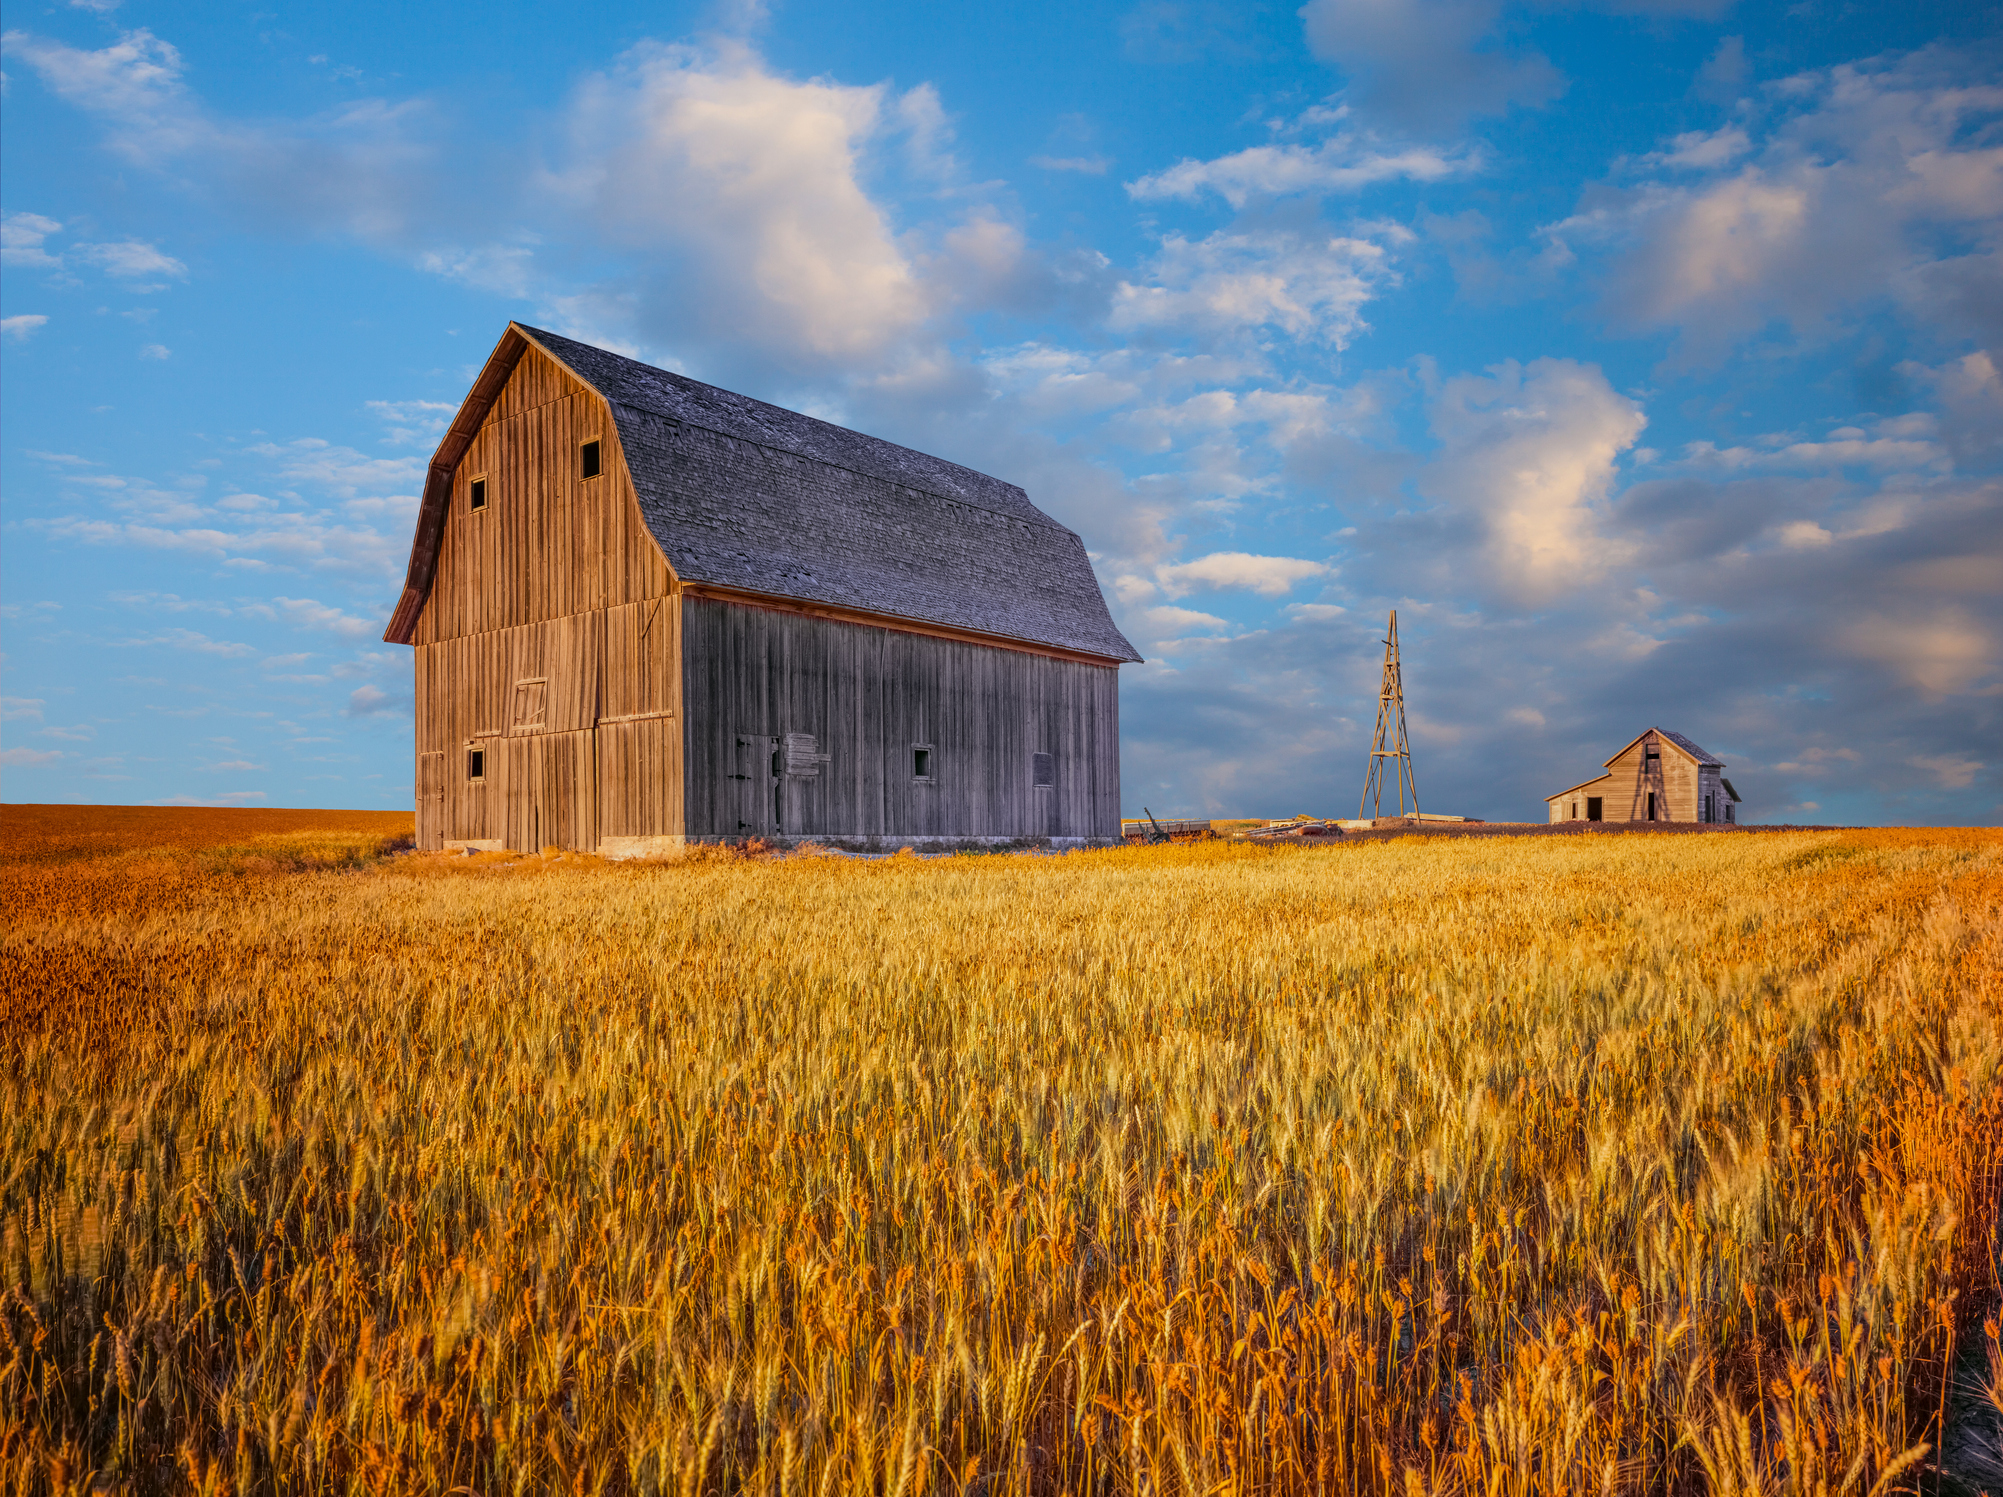 Barn in the wheat fields of Idaho